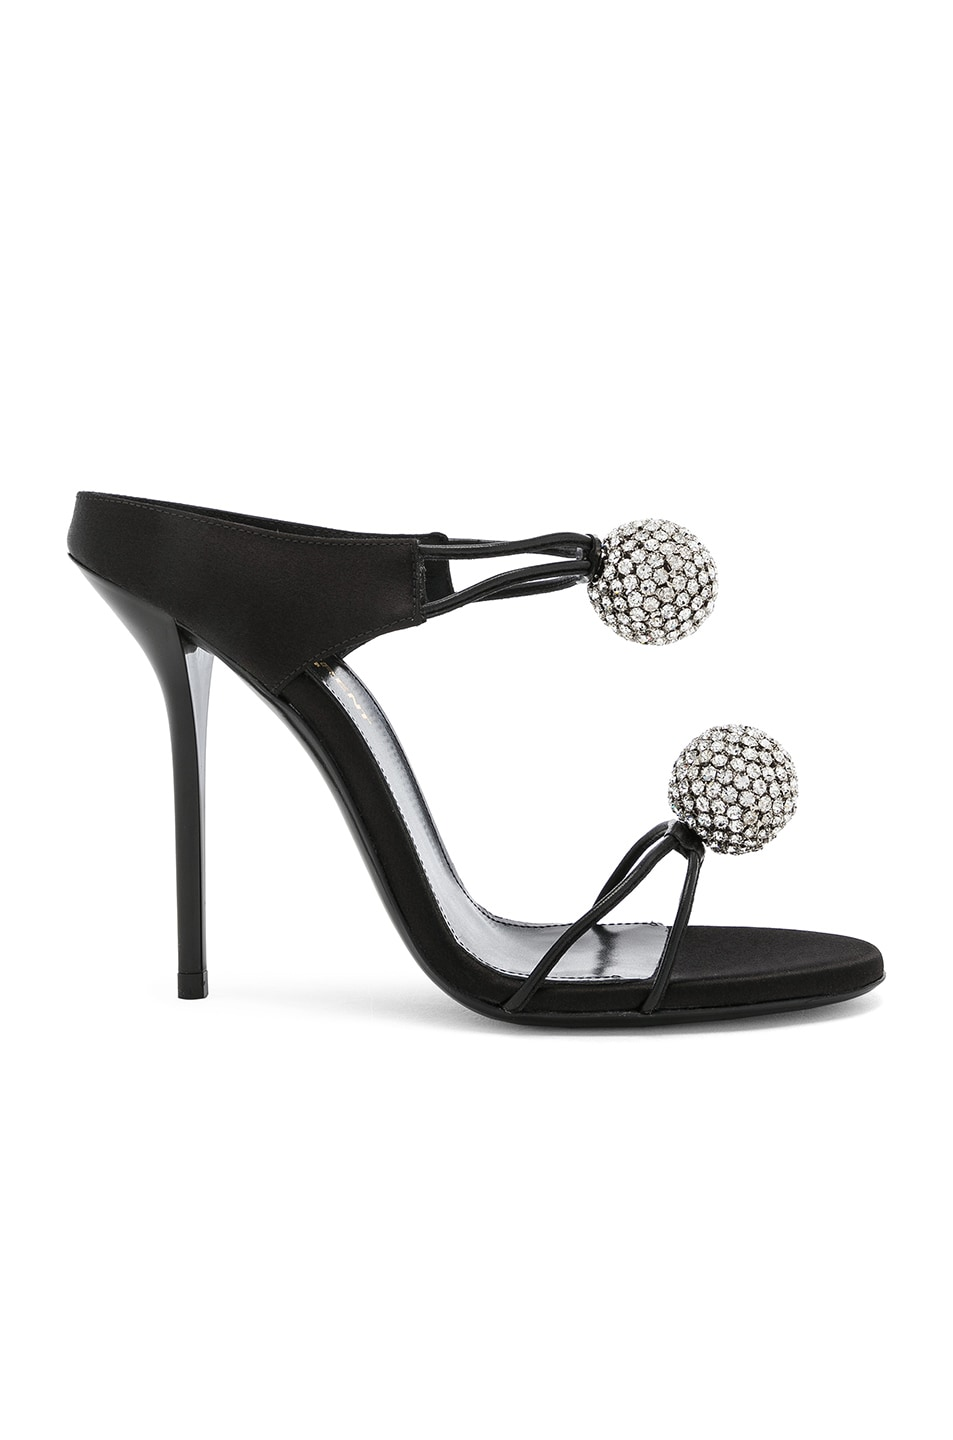 Image 1 of Saint Laurent Satin Pom Pom Strap Pierre Sandals in Black